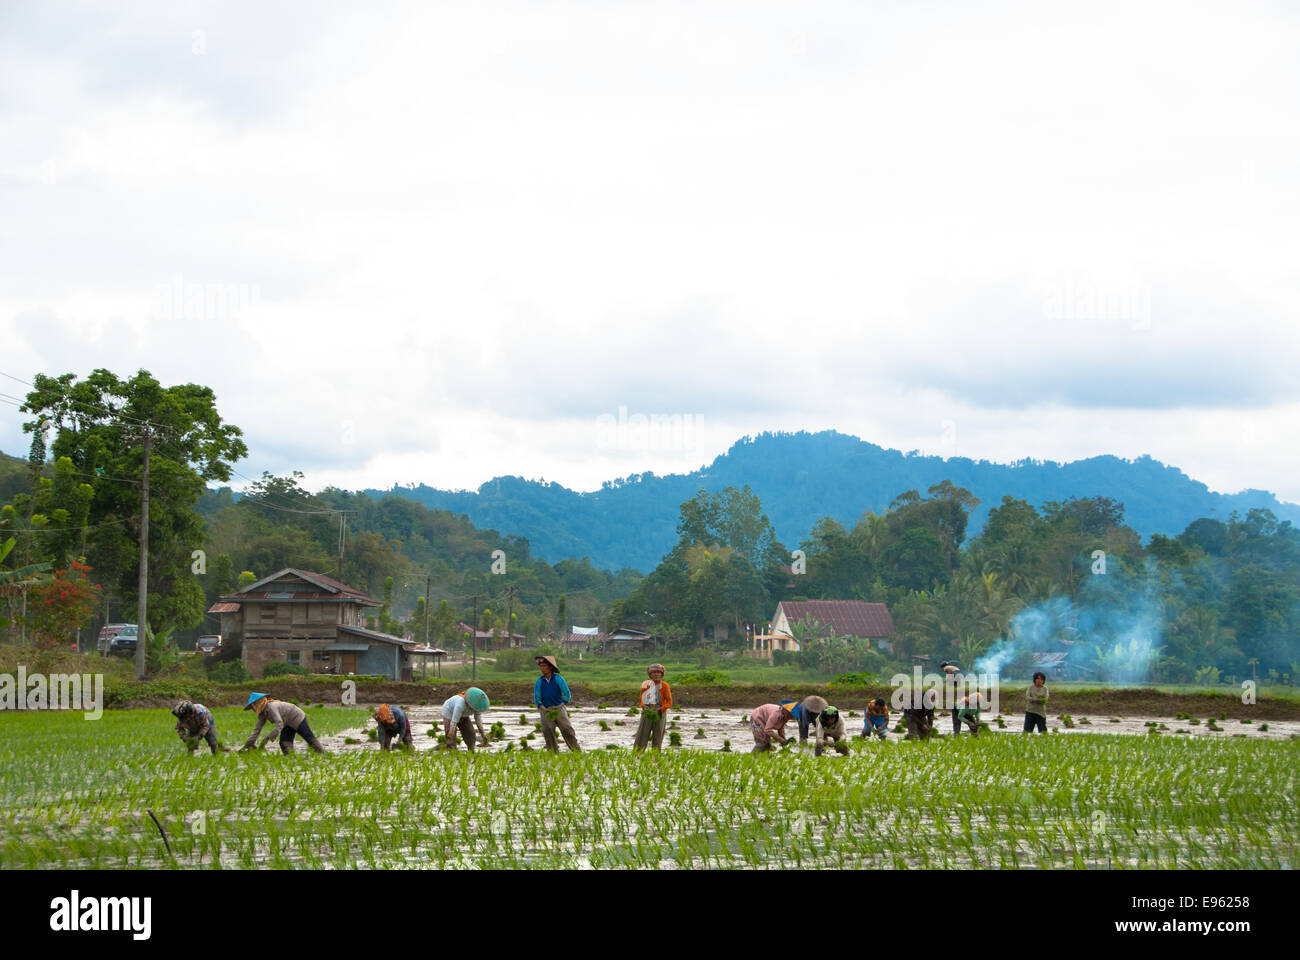 people working on rice paddy in Kete kesu sulawesi indonesia - Stock Image